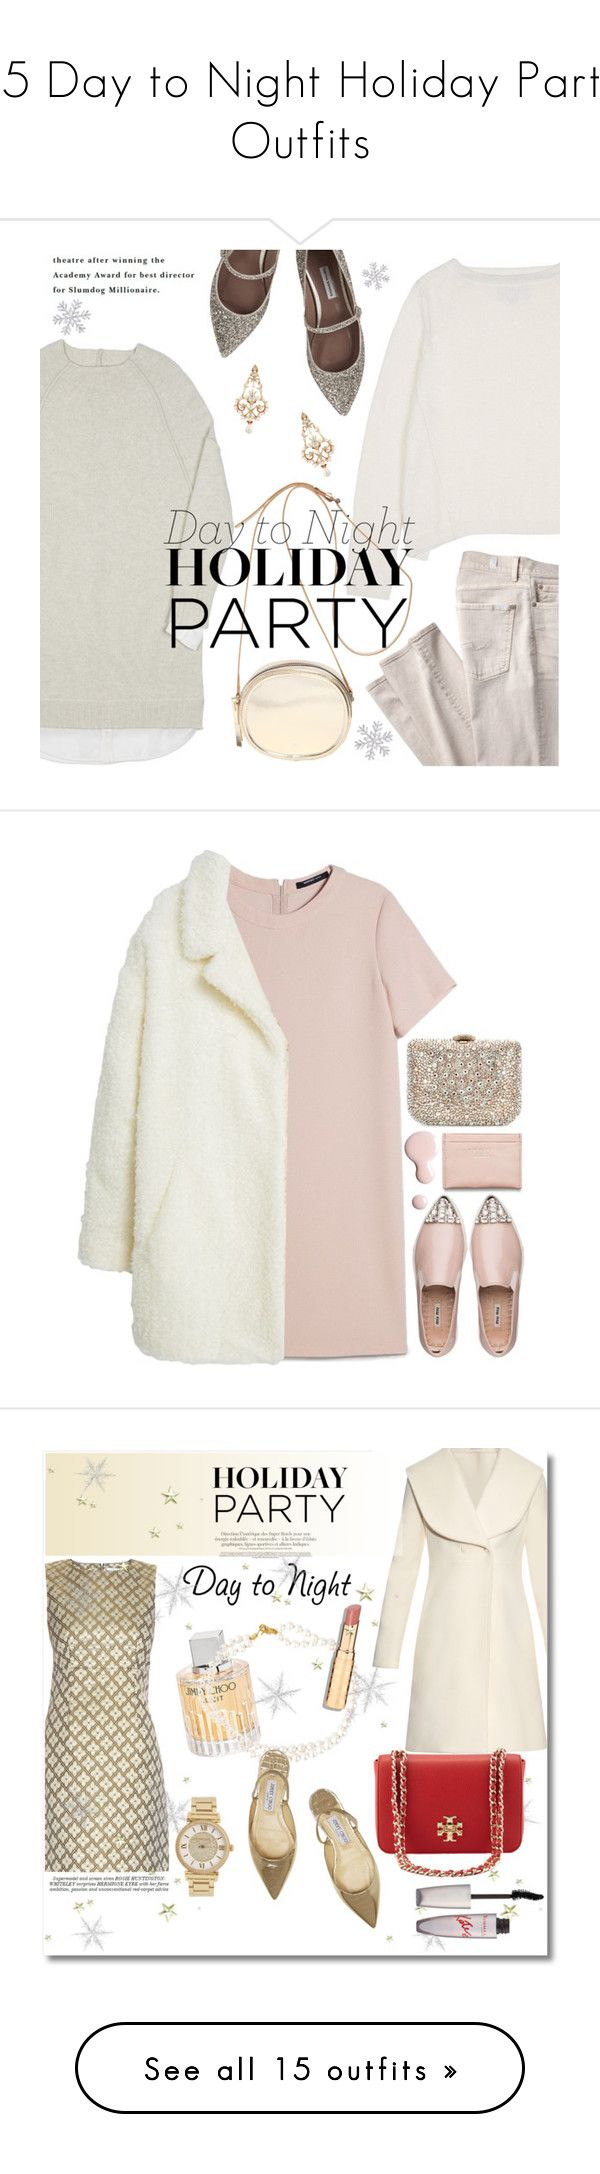 """15 Day to Night Holiday Party Outfits"" by polyvore-editorial ❤ liked on Polyvore featuring DayToNight, waystowear, 7 For All Mankind, Brochu Walker, N°21, Tabitha Simmons, Diego Percossi Papi, MANGO, Miu Miu and Rodo"